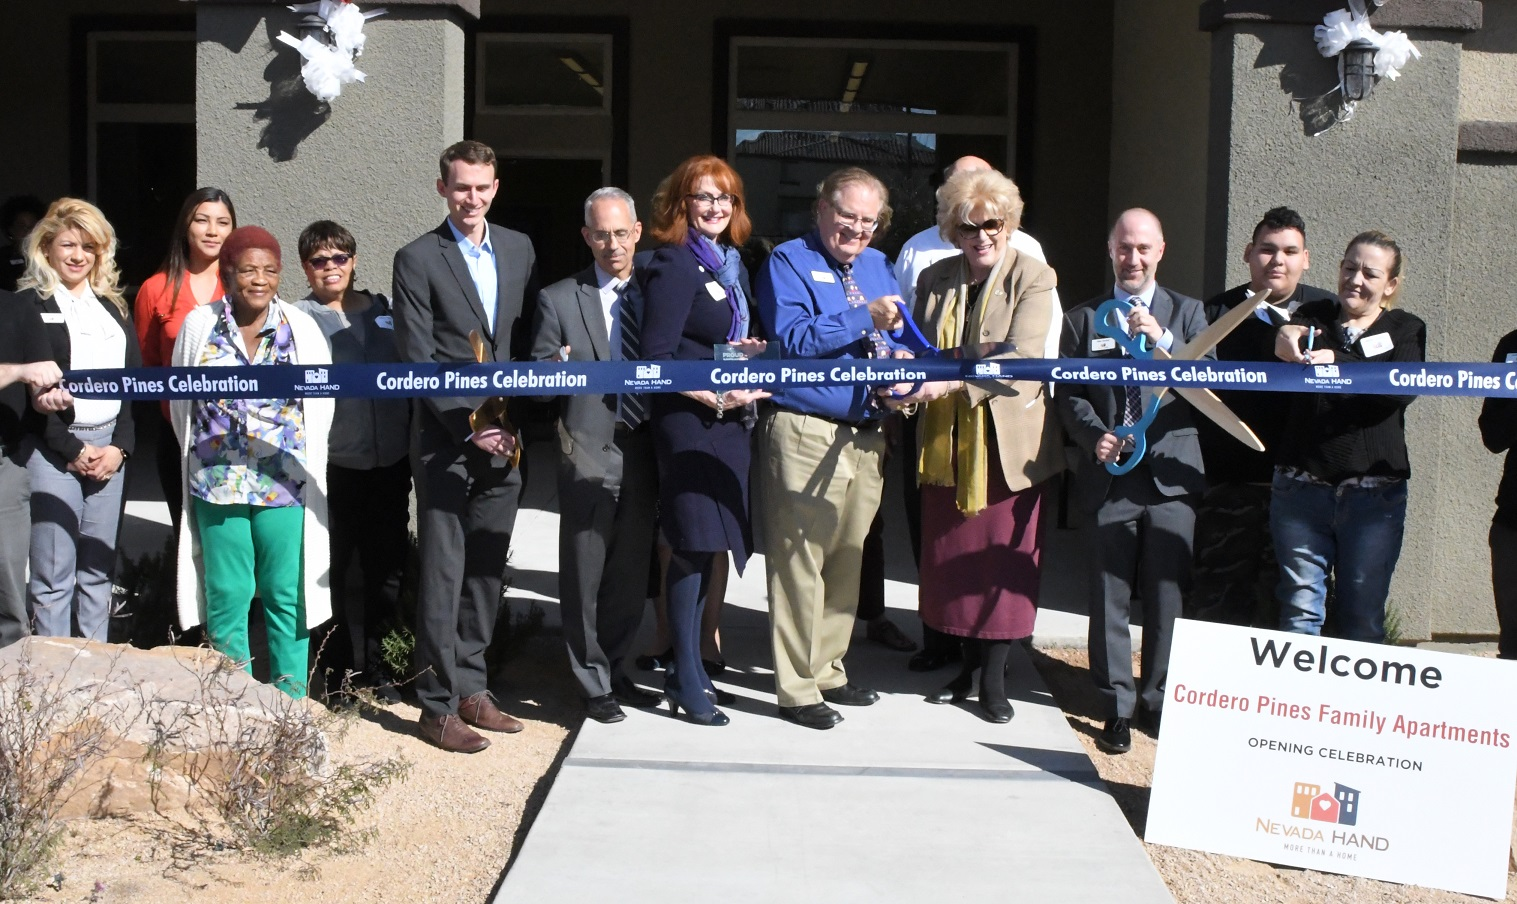 new affordable apartment community for working families celebrated